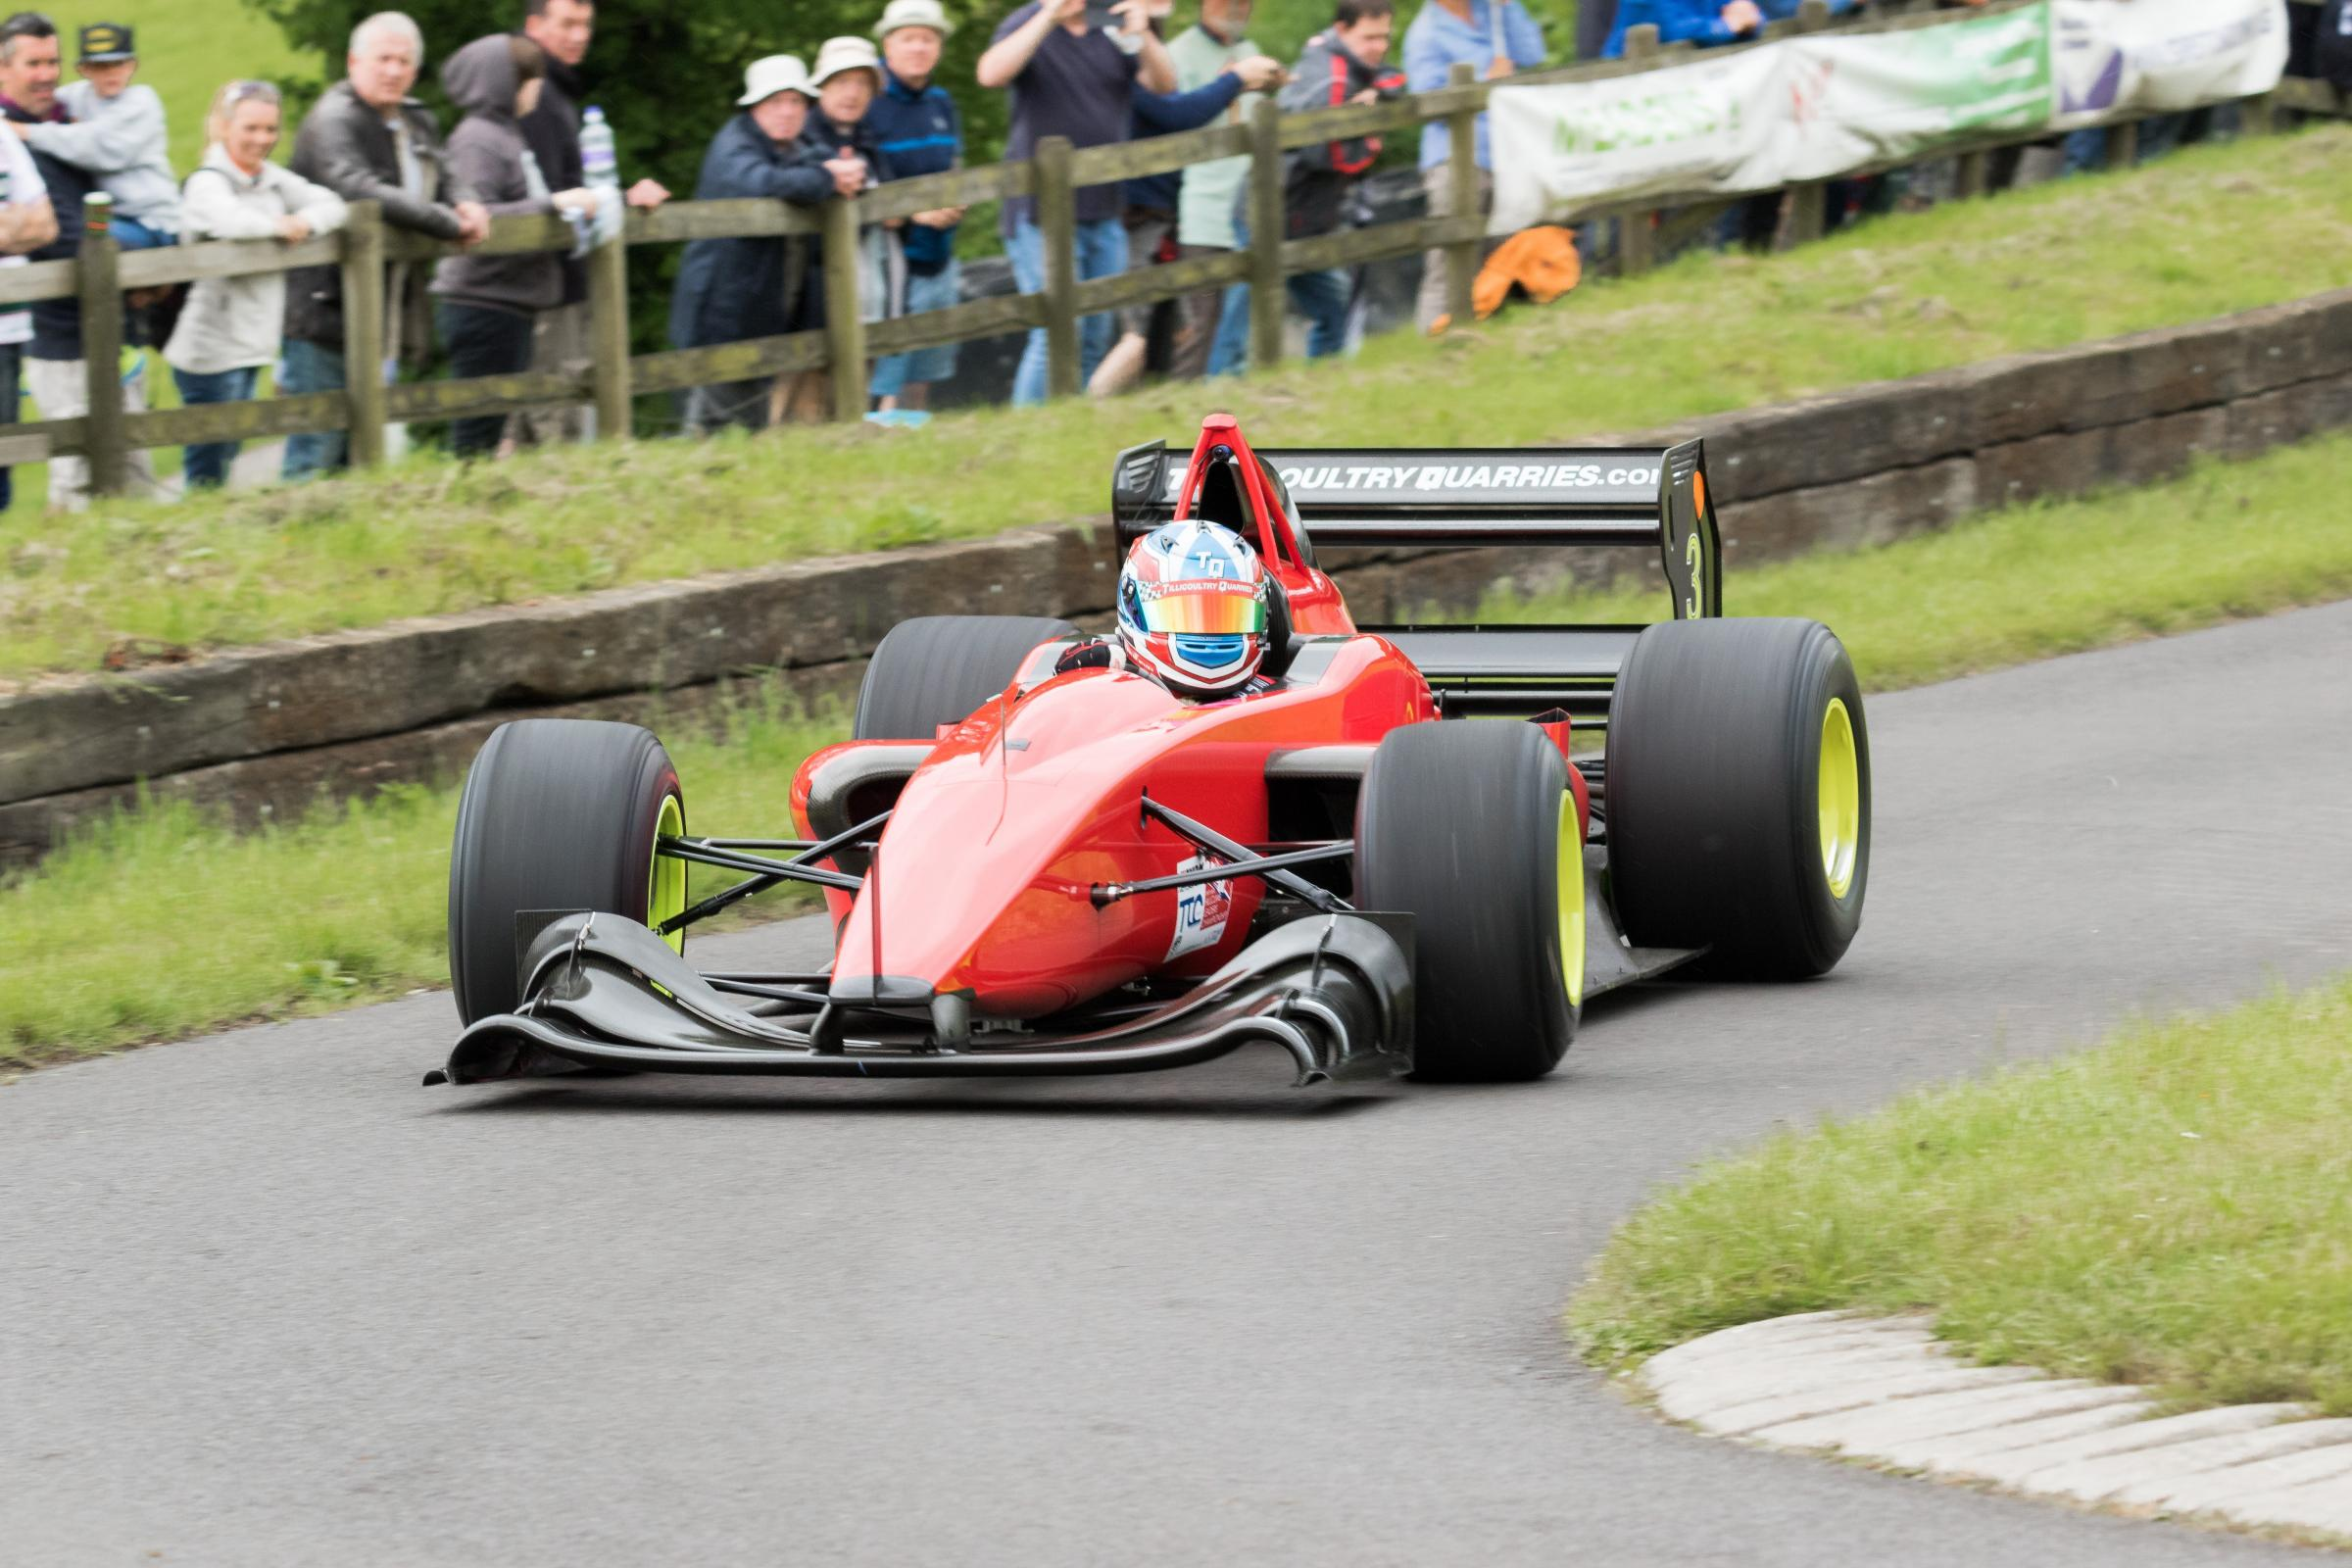 Gurston Down Speed Hill Climb - Saturday 26th and Sunday 27th